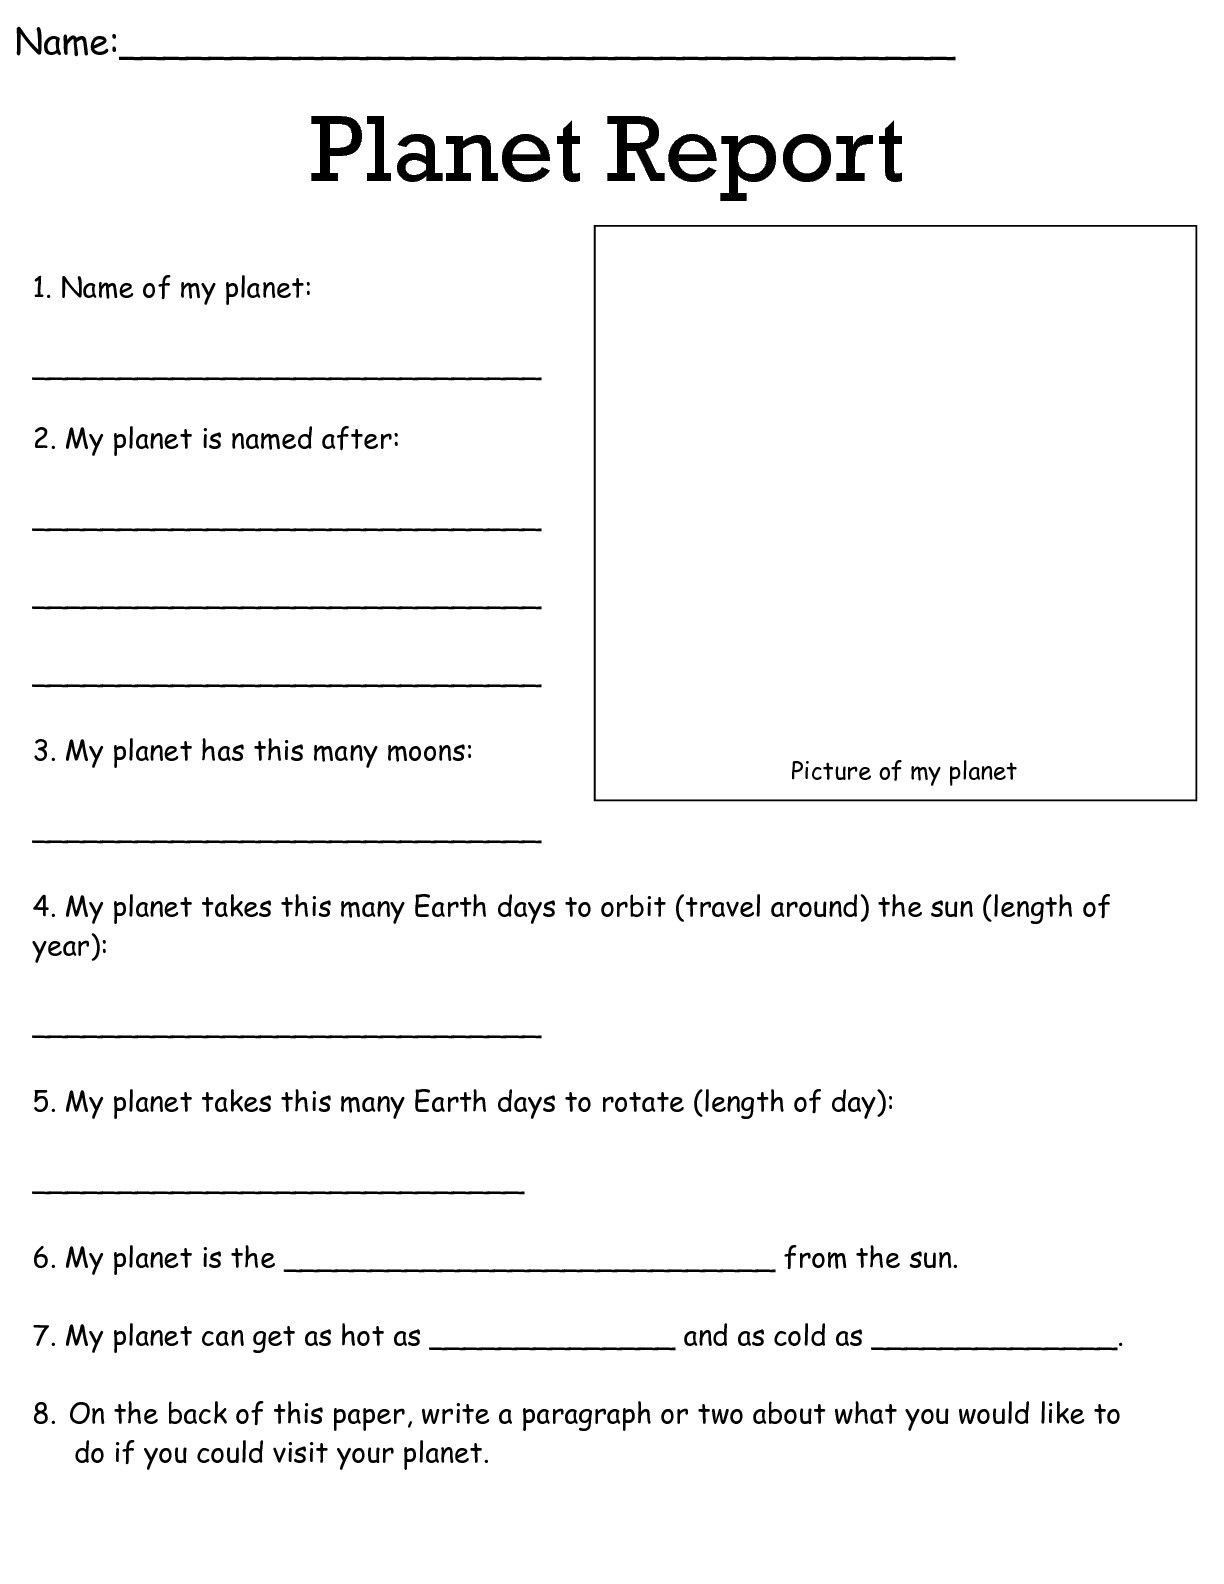 Science 7th Grade Worksheets Pin On Educational Worksheets Template